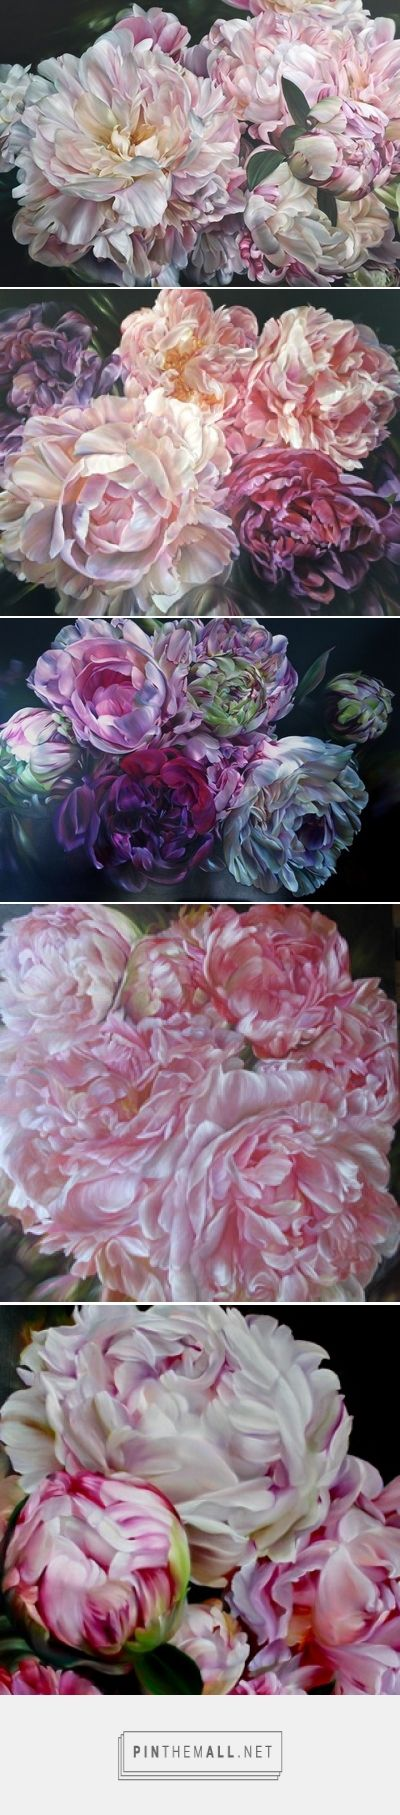 Floral Oil Paintings by marcella kaspar - created via https://pinthemall.net